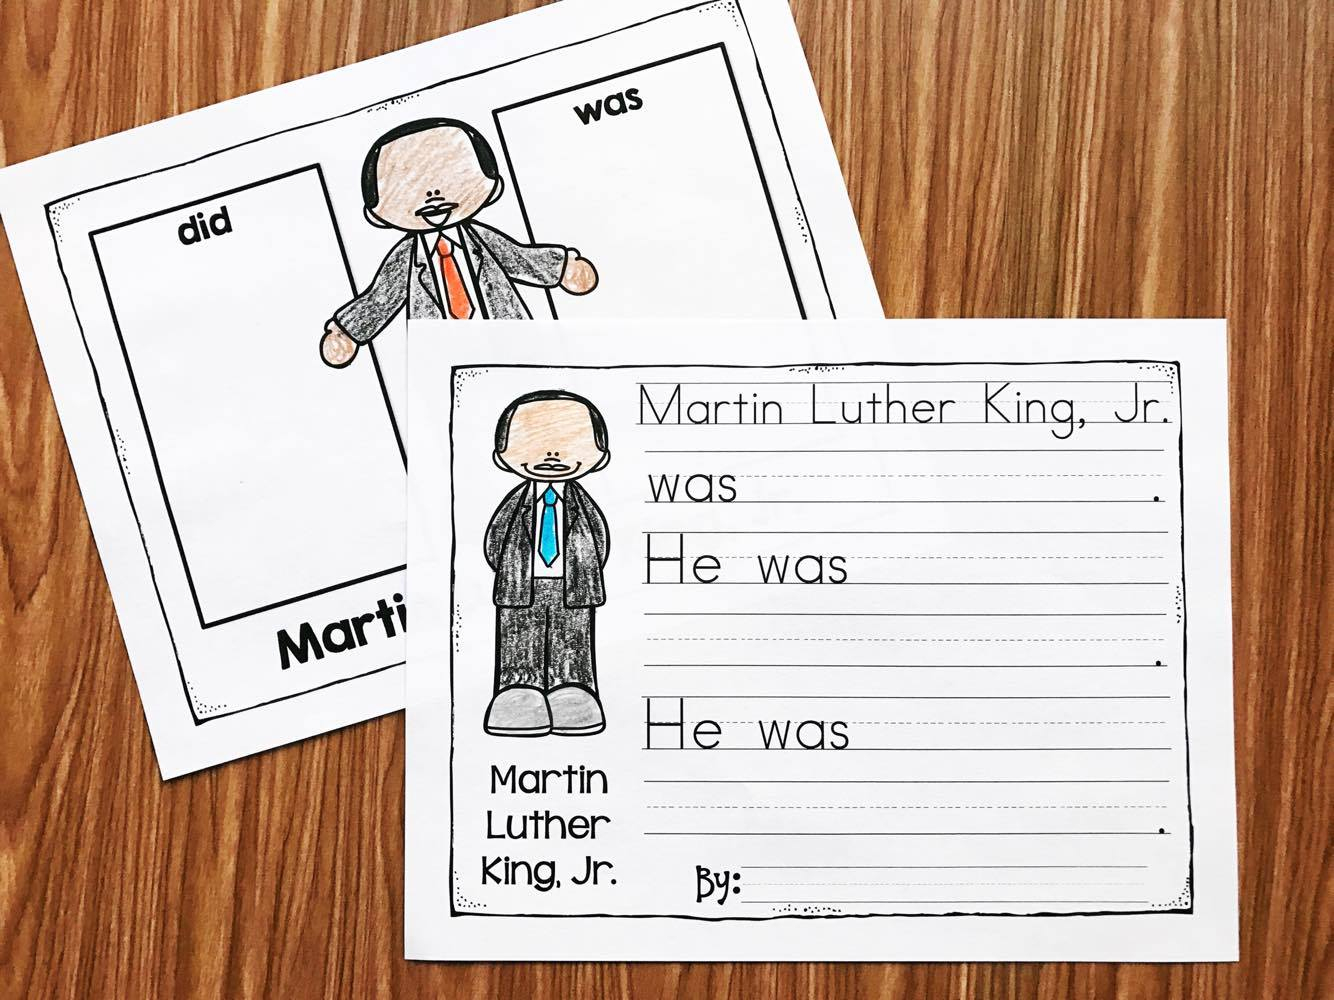 Coloring This Free Worksheet About Martin Luther King